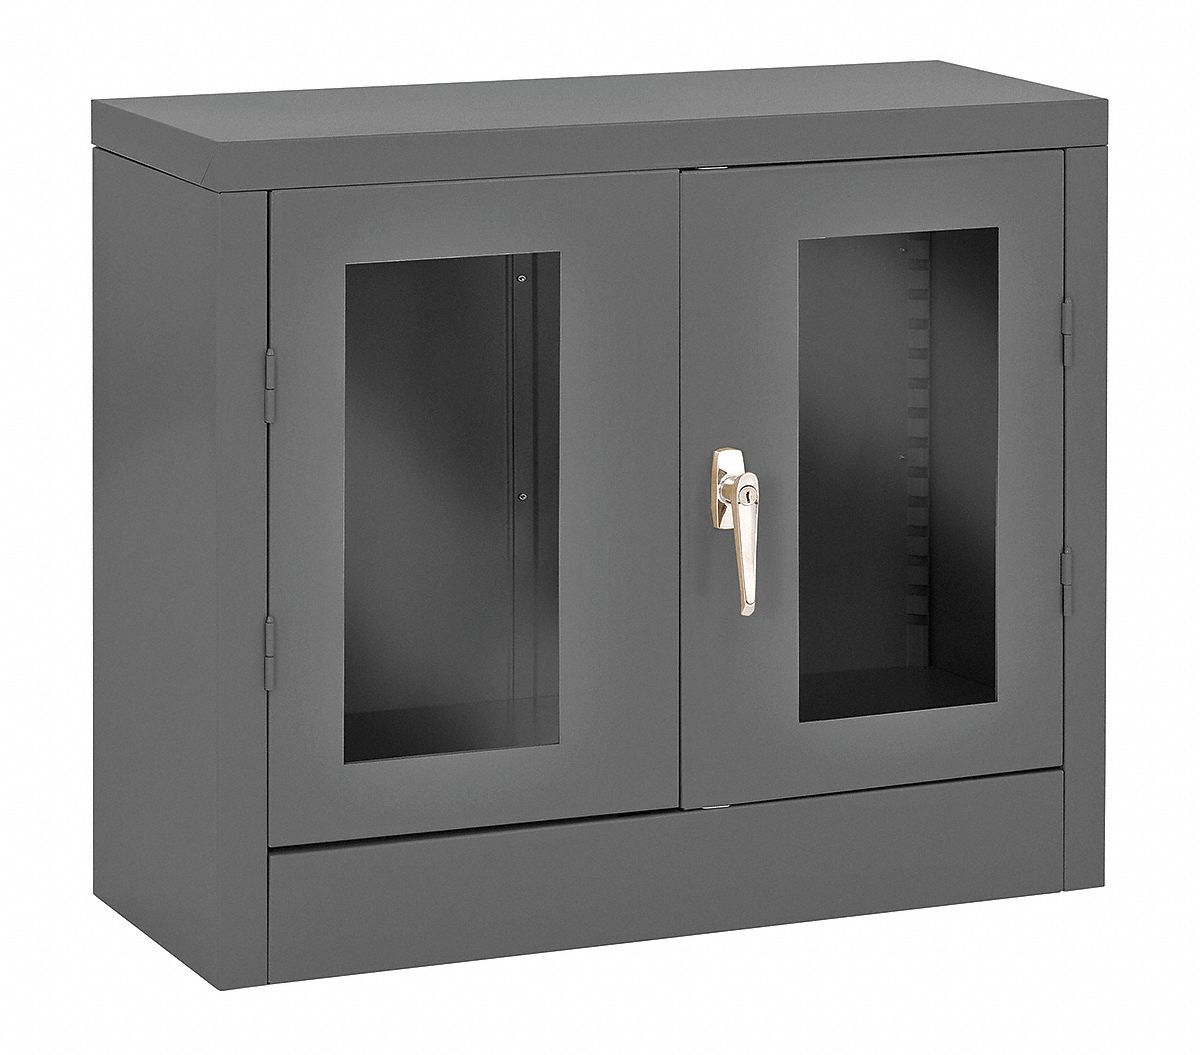 premade cabinets edsal storage cabinet gray 26in h 30in w 12ind 3lku5 24901